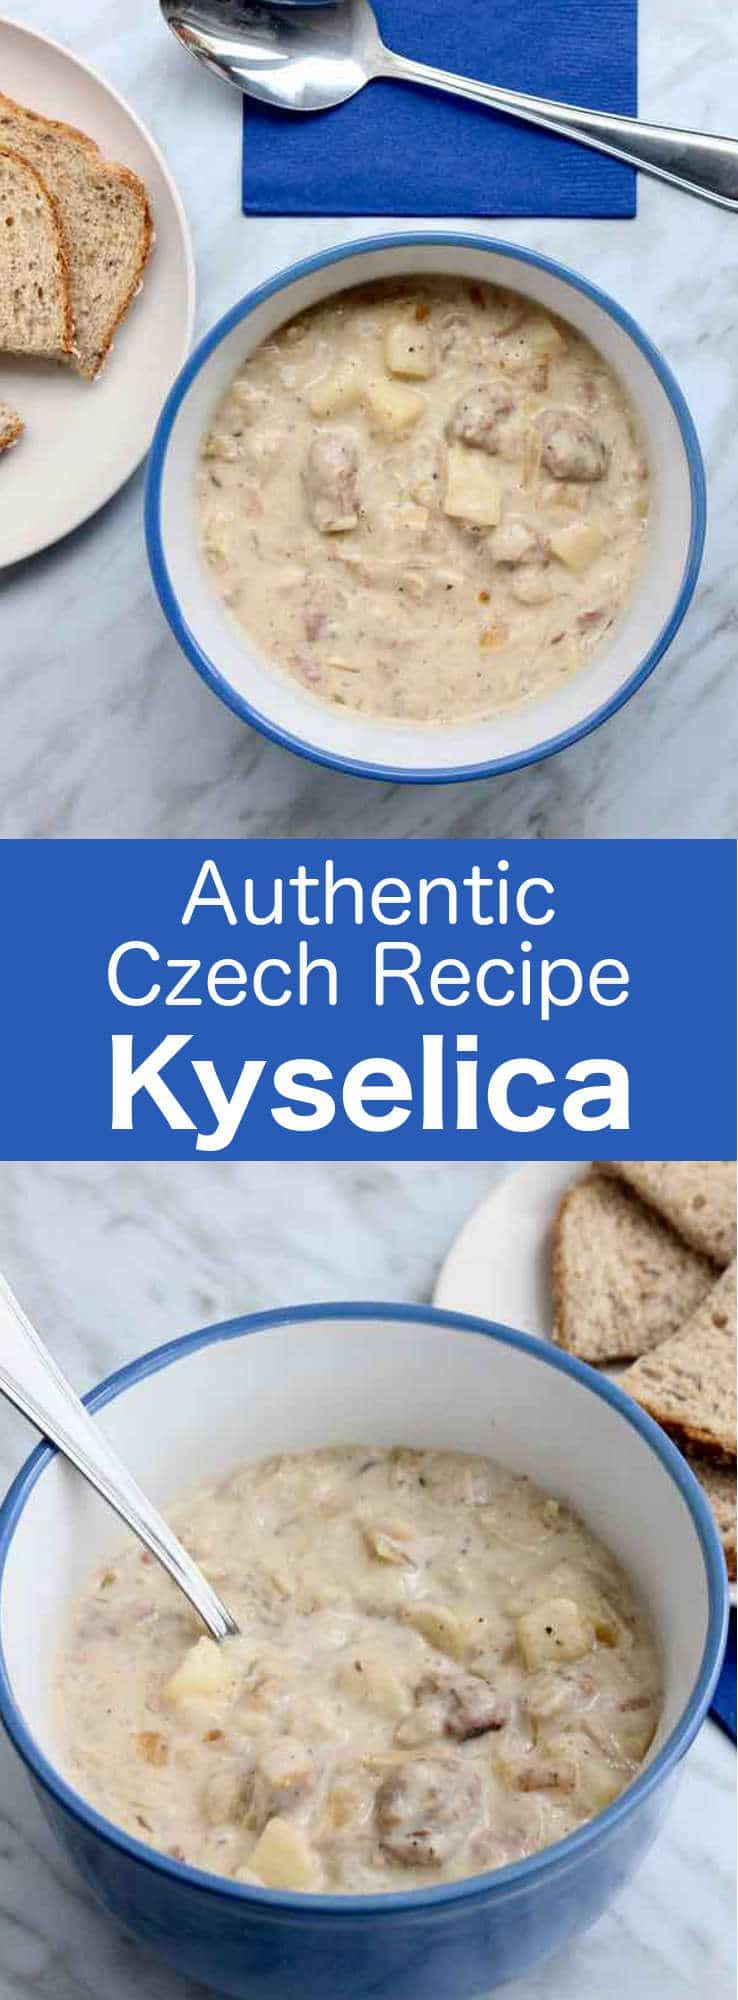 Kyselica is a deliciously thick traditional soup from the Czech Republic consisting of potatoes, sauerkraut and smoked meat. #Czech #CzechRepublic #CzechCuisine #WorldCuisine #196flavors #czechrecipes